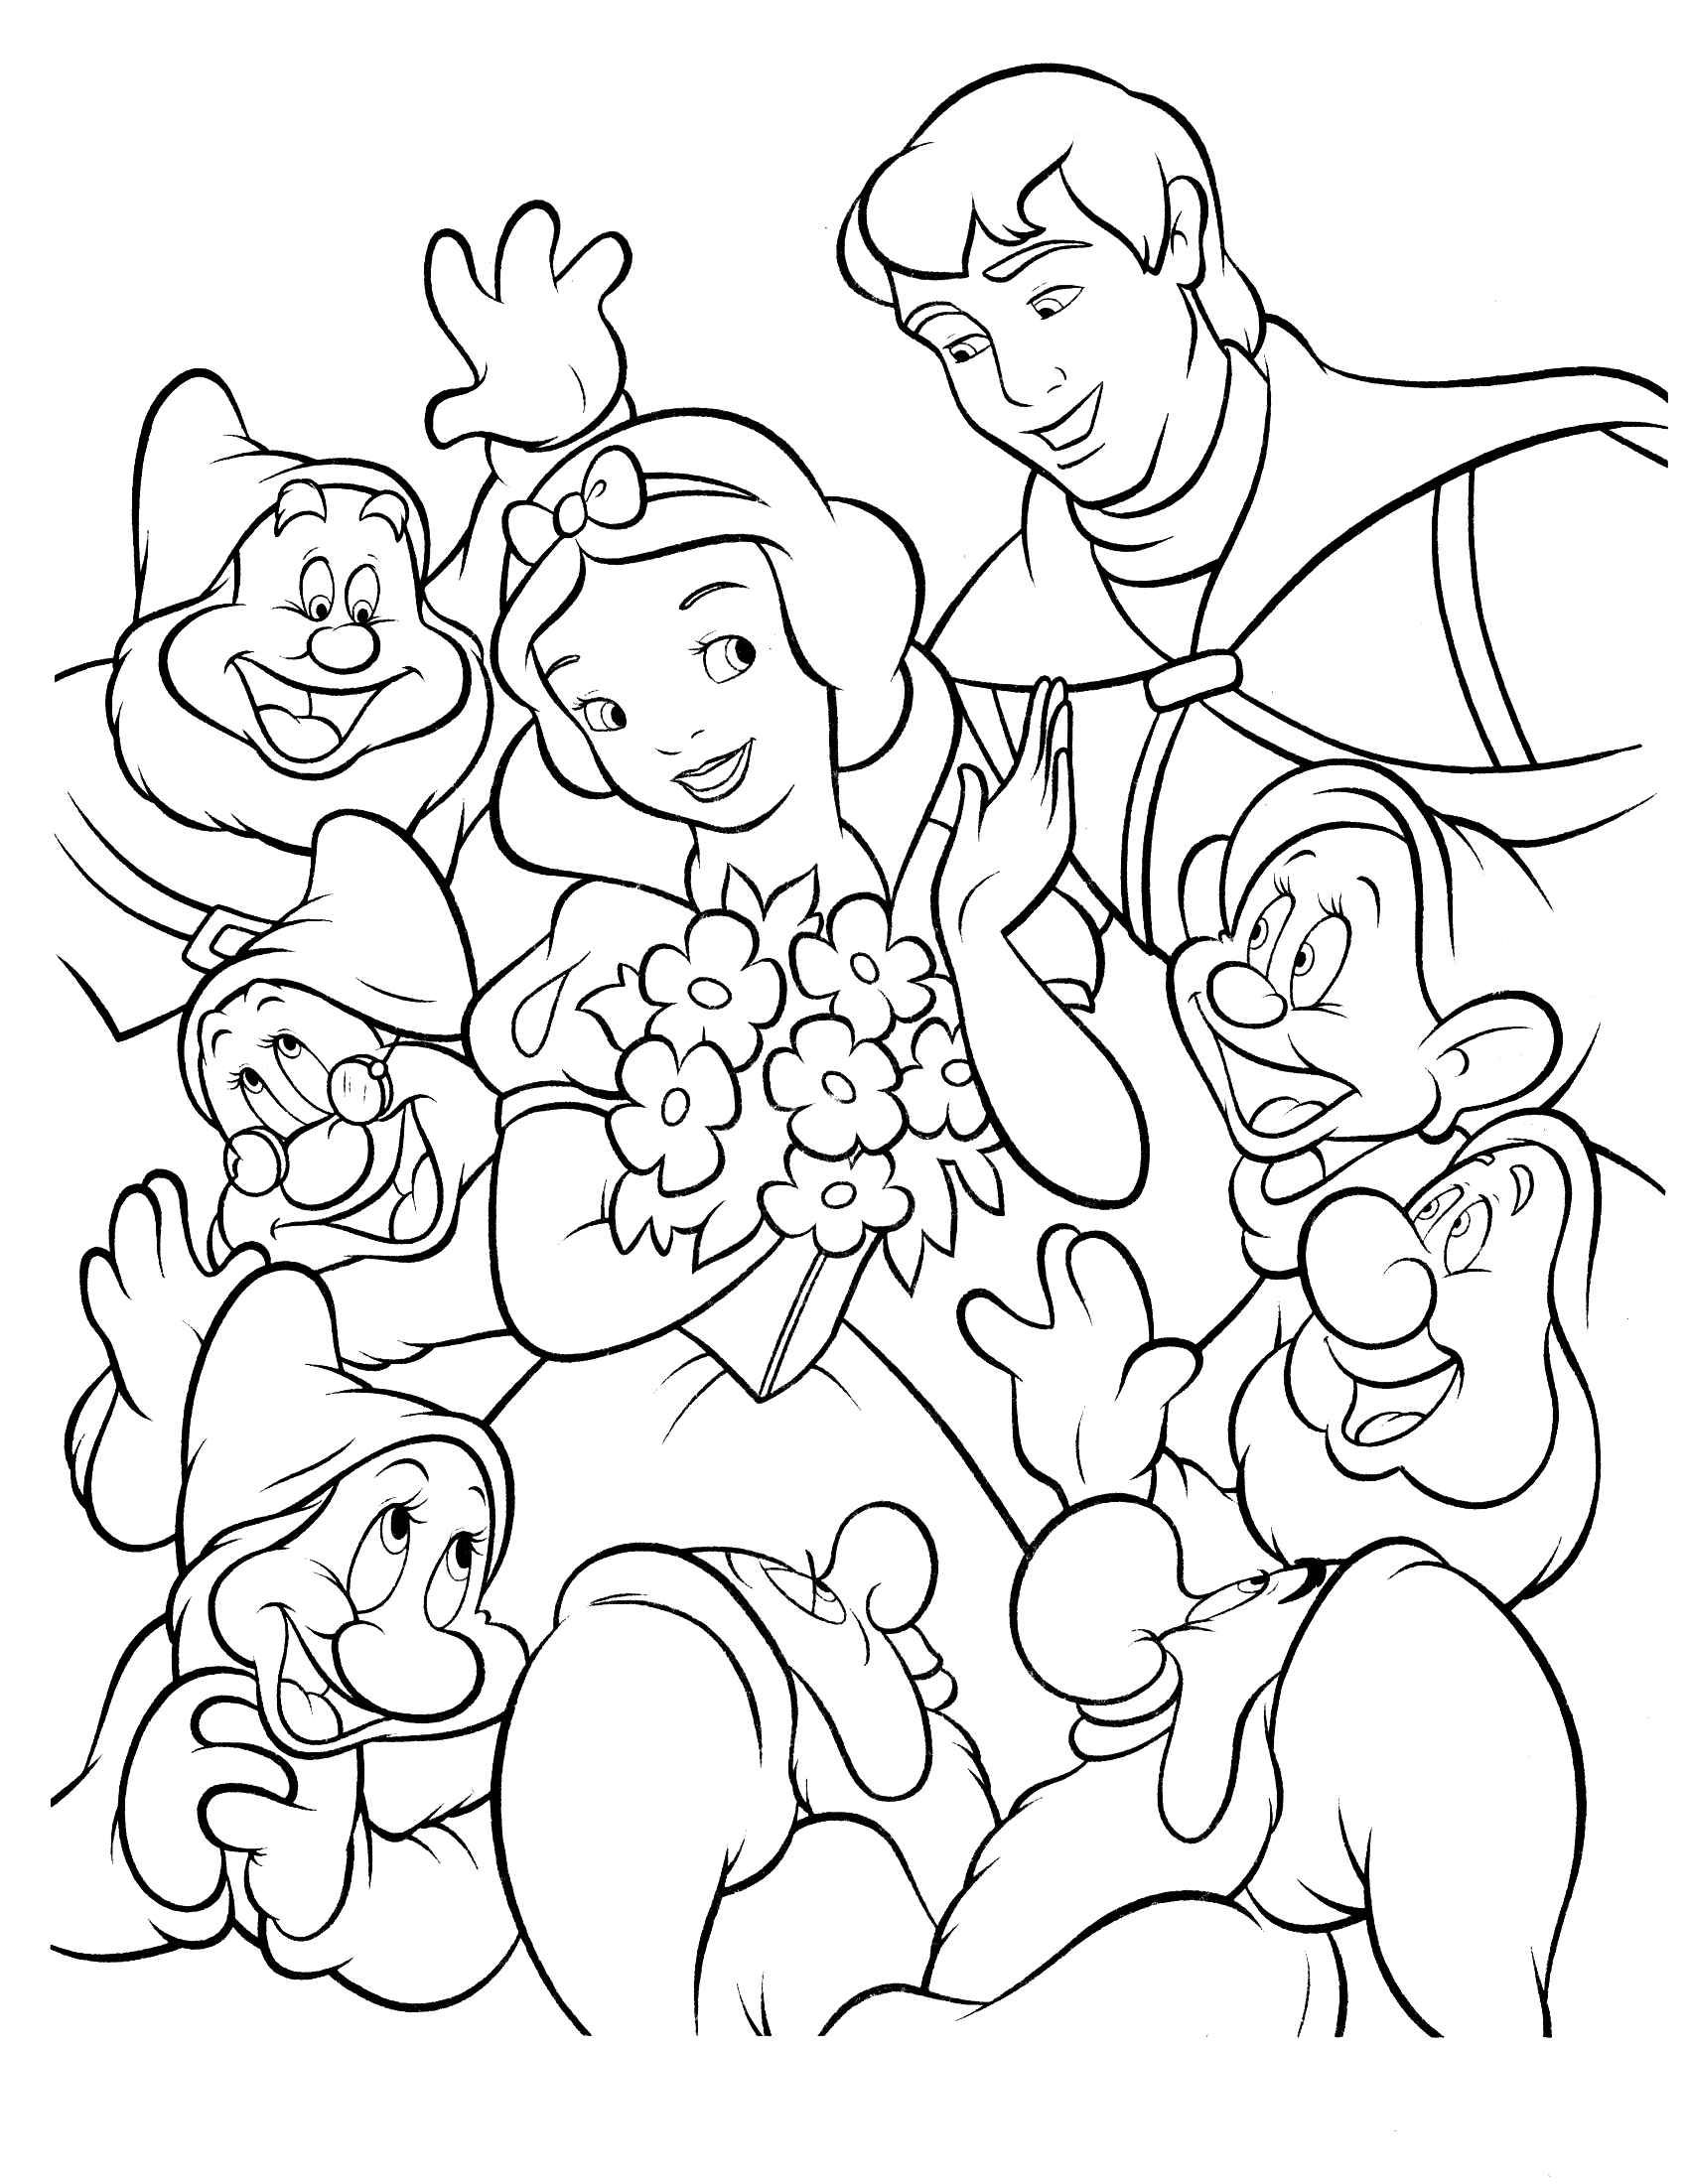 Snow White Coloring Pages For Your Lovely Daughters | Disney ... | 2200x1700